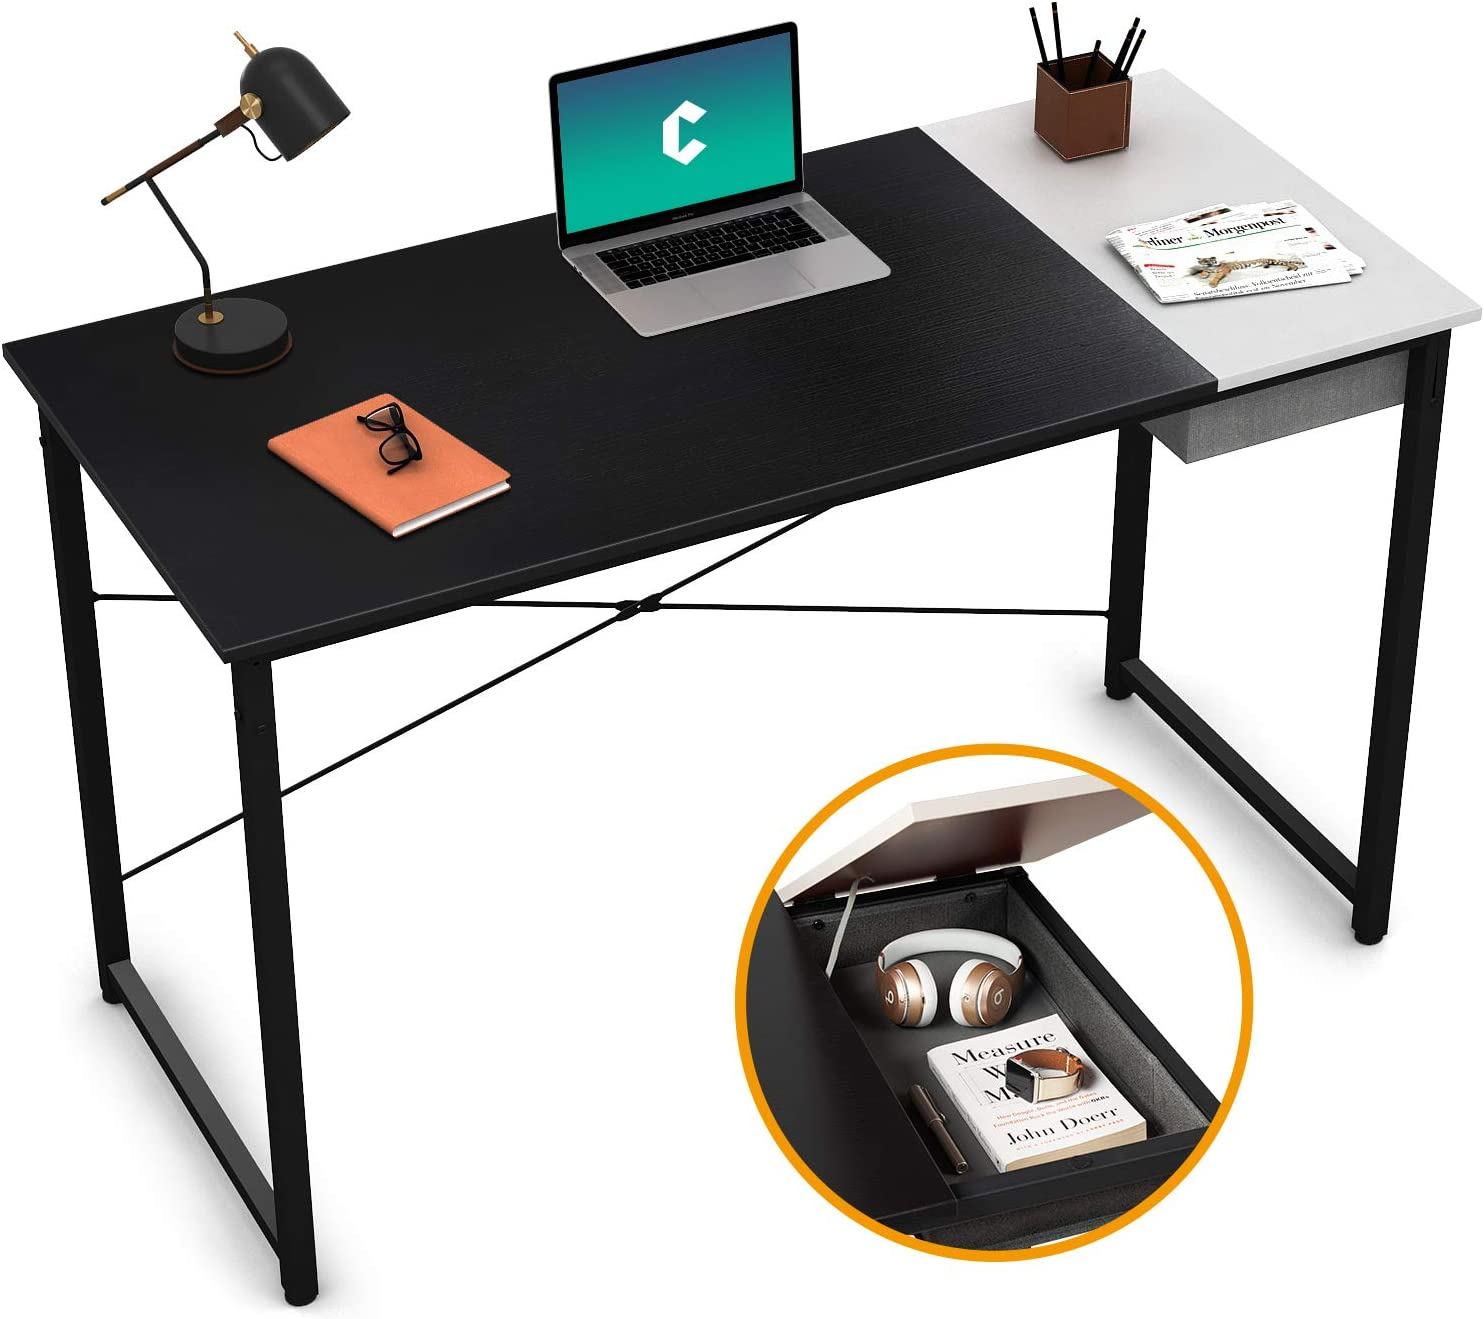 "Cubiker Computer Desk 47"" Home Office Writing Study Laptop Table, Modern Simple Style Desk with Drawer, Black White"